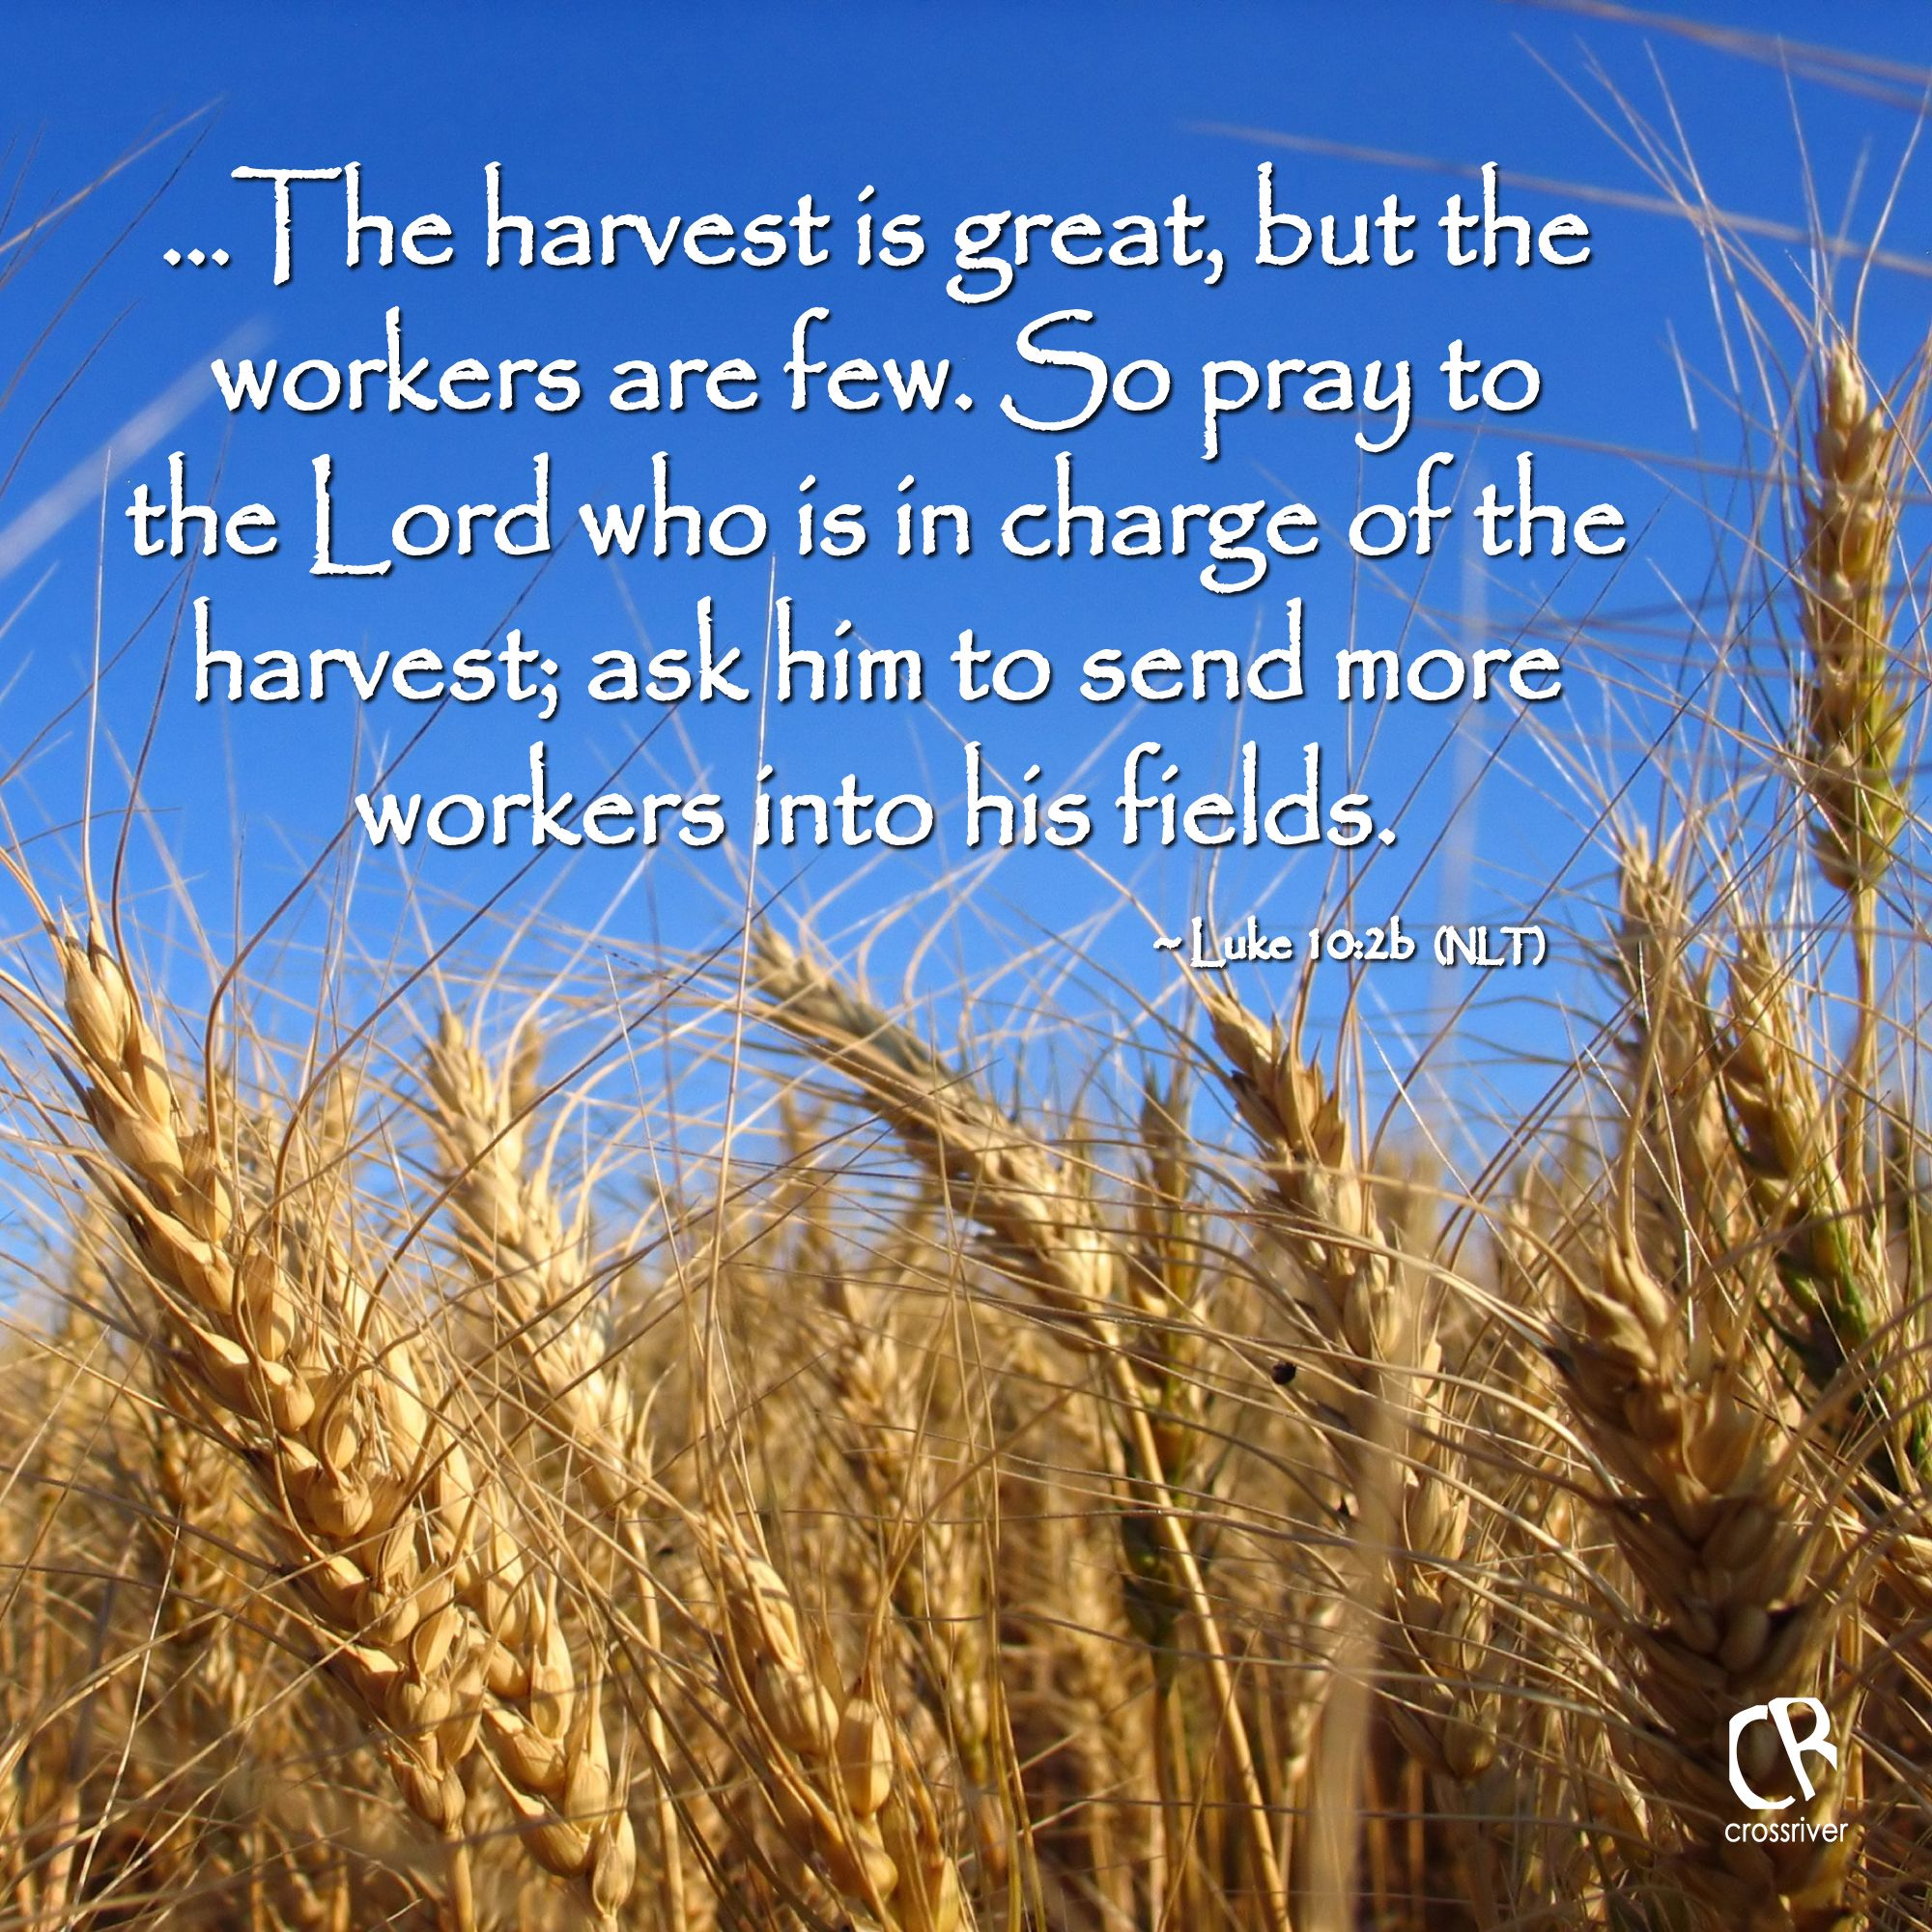 E Harvest Is Great But The Workers Are Few So Pray To The Lord Who Is In Charge Of The